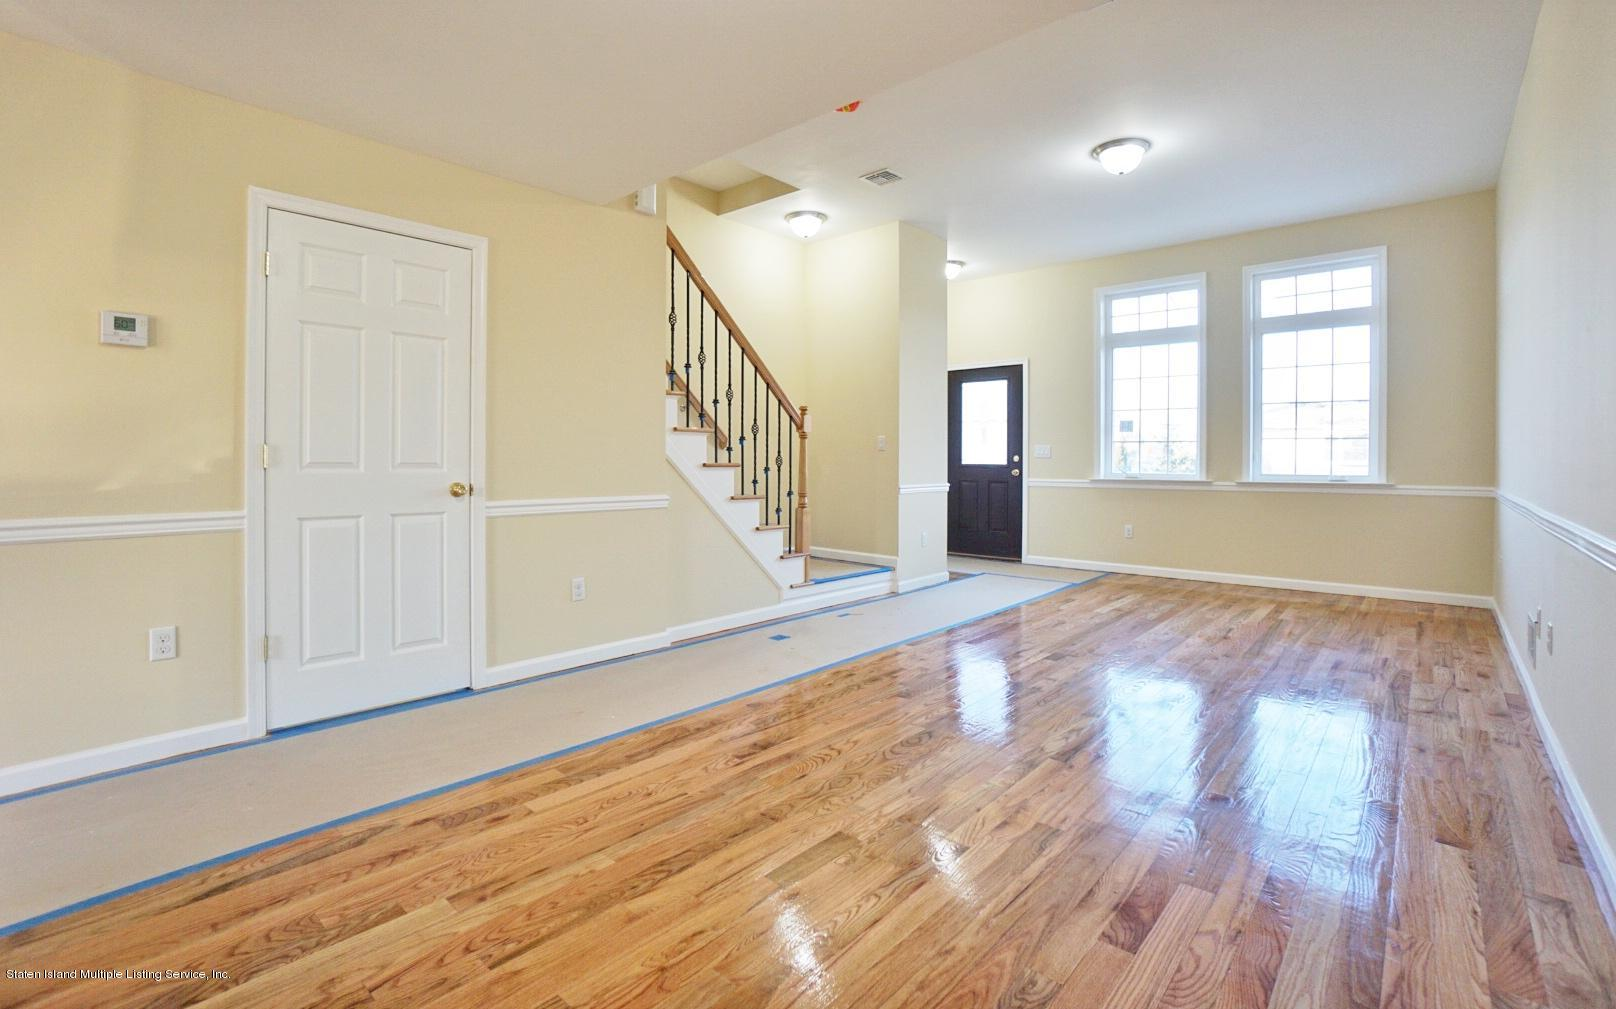 Single Family - Attached 34 Bamberger Lane  Staten Island, NY 10312, MLS-1135521-5